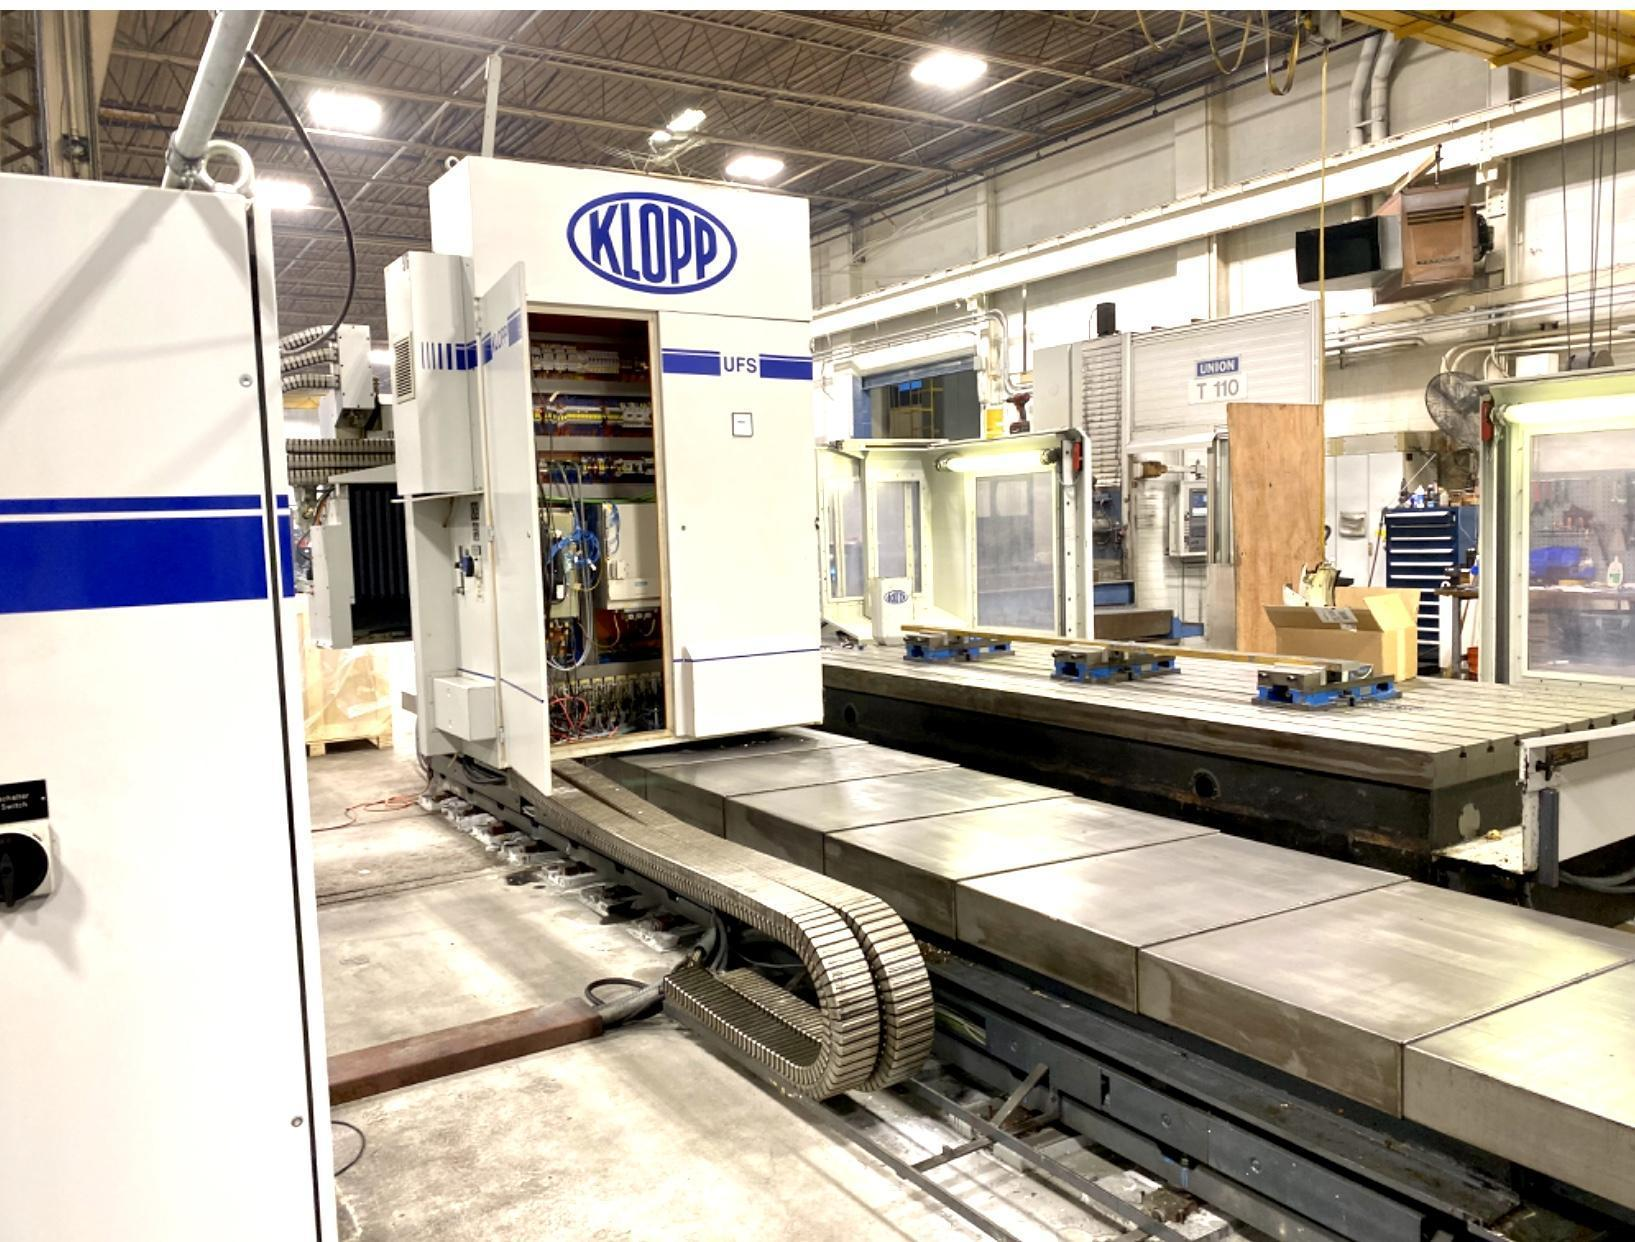 USED KLOPP CNC FLOOR TYPE UNIVERSAL MILLING MACHINE (German made) Model: UFS 1000